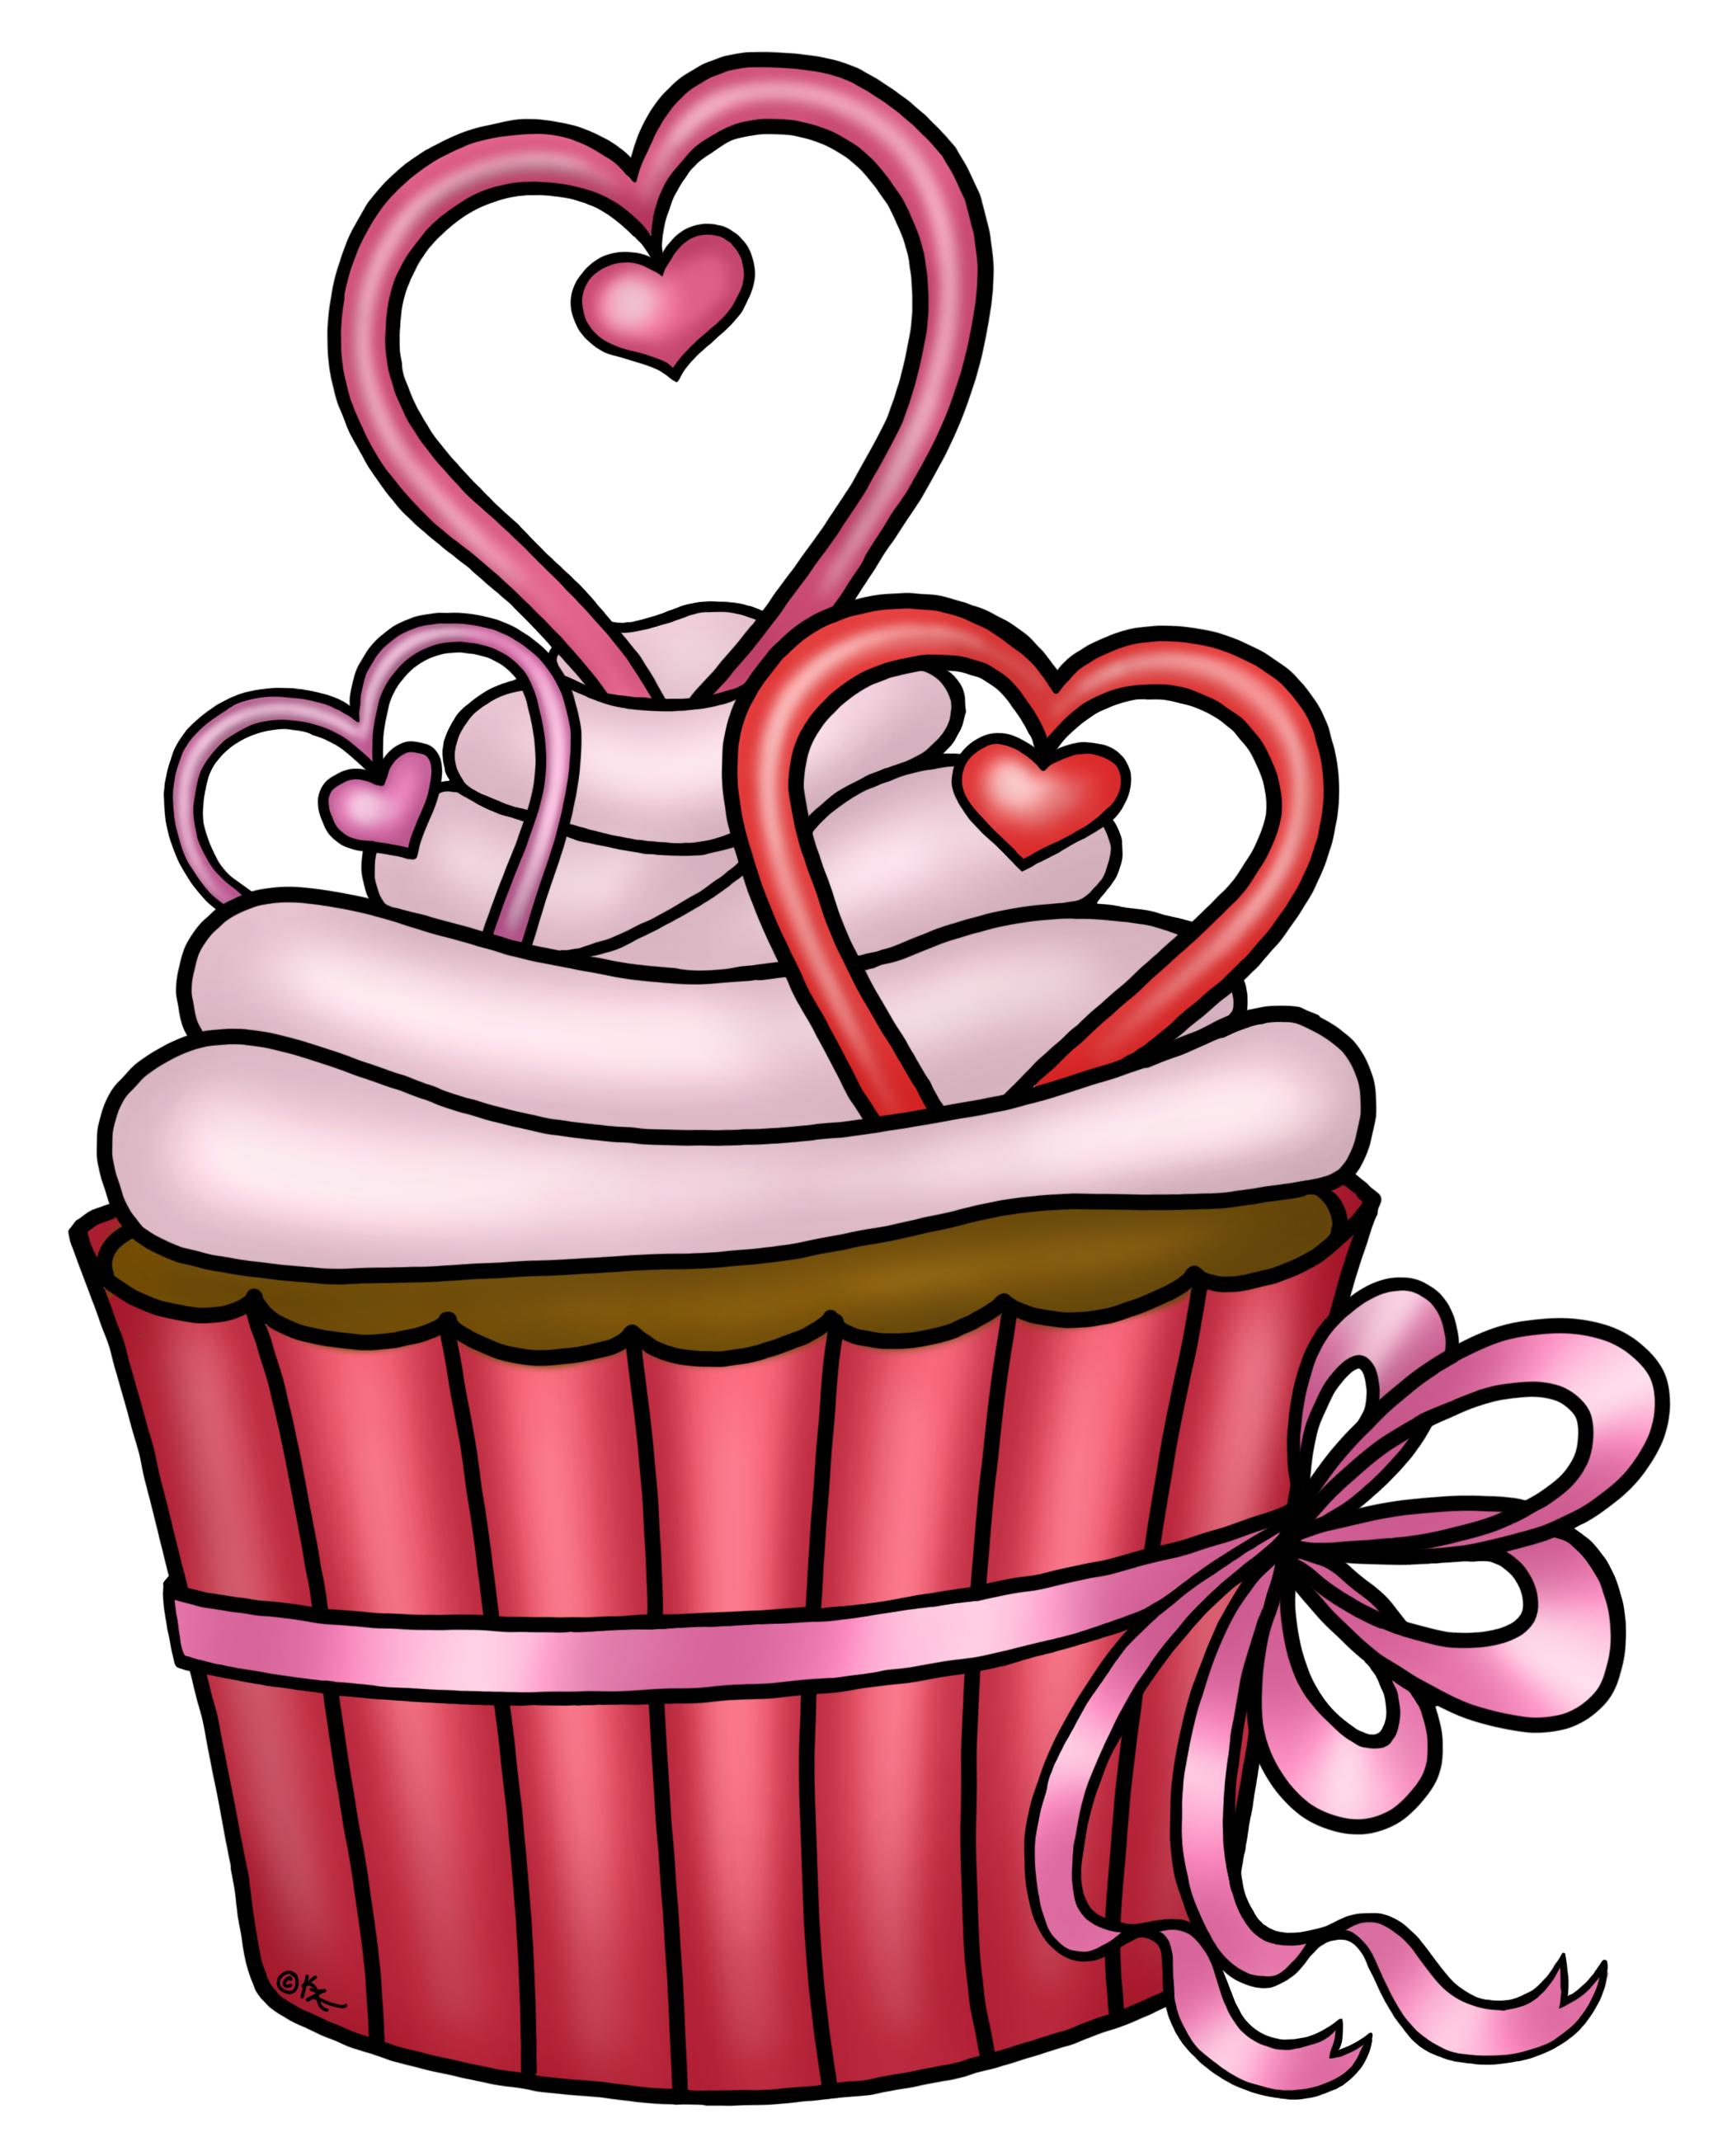 Heart cake clipart banner freeuse stock Cupcake-PNG :) | YİYECEK İÇECEK 1 ( food and drink ) | Pinterest ... banner freeuse stock